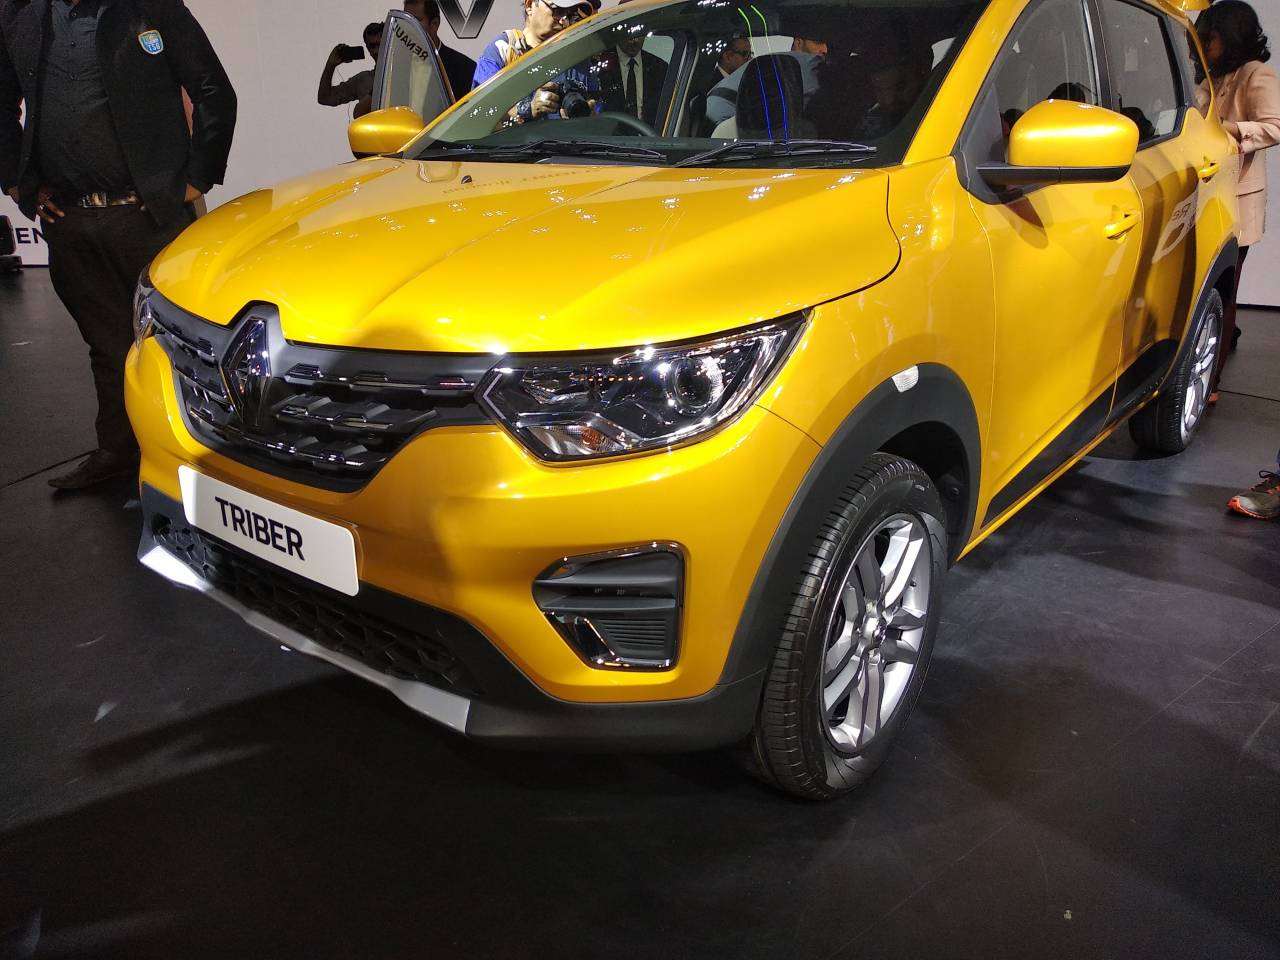 Like the Lodgy the Triber too will sport a third row. The Triber is based on the modified CMF-A platform that also hosts Renault's top-selling car Kwid. (Image: Moneycontrol)